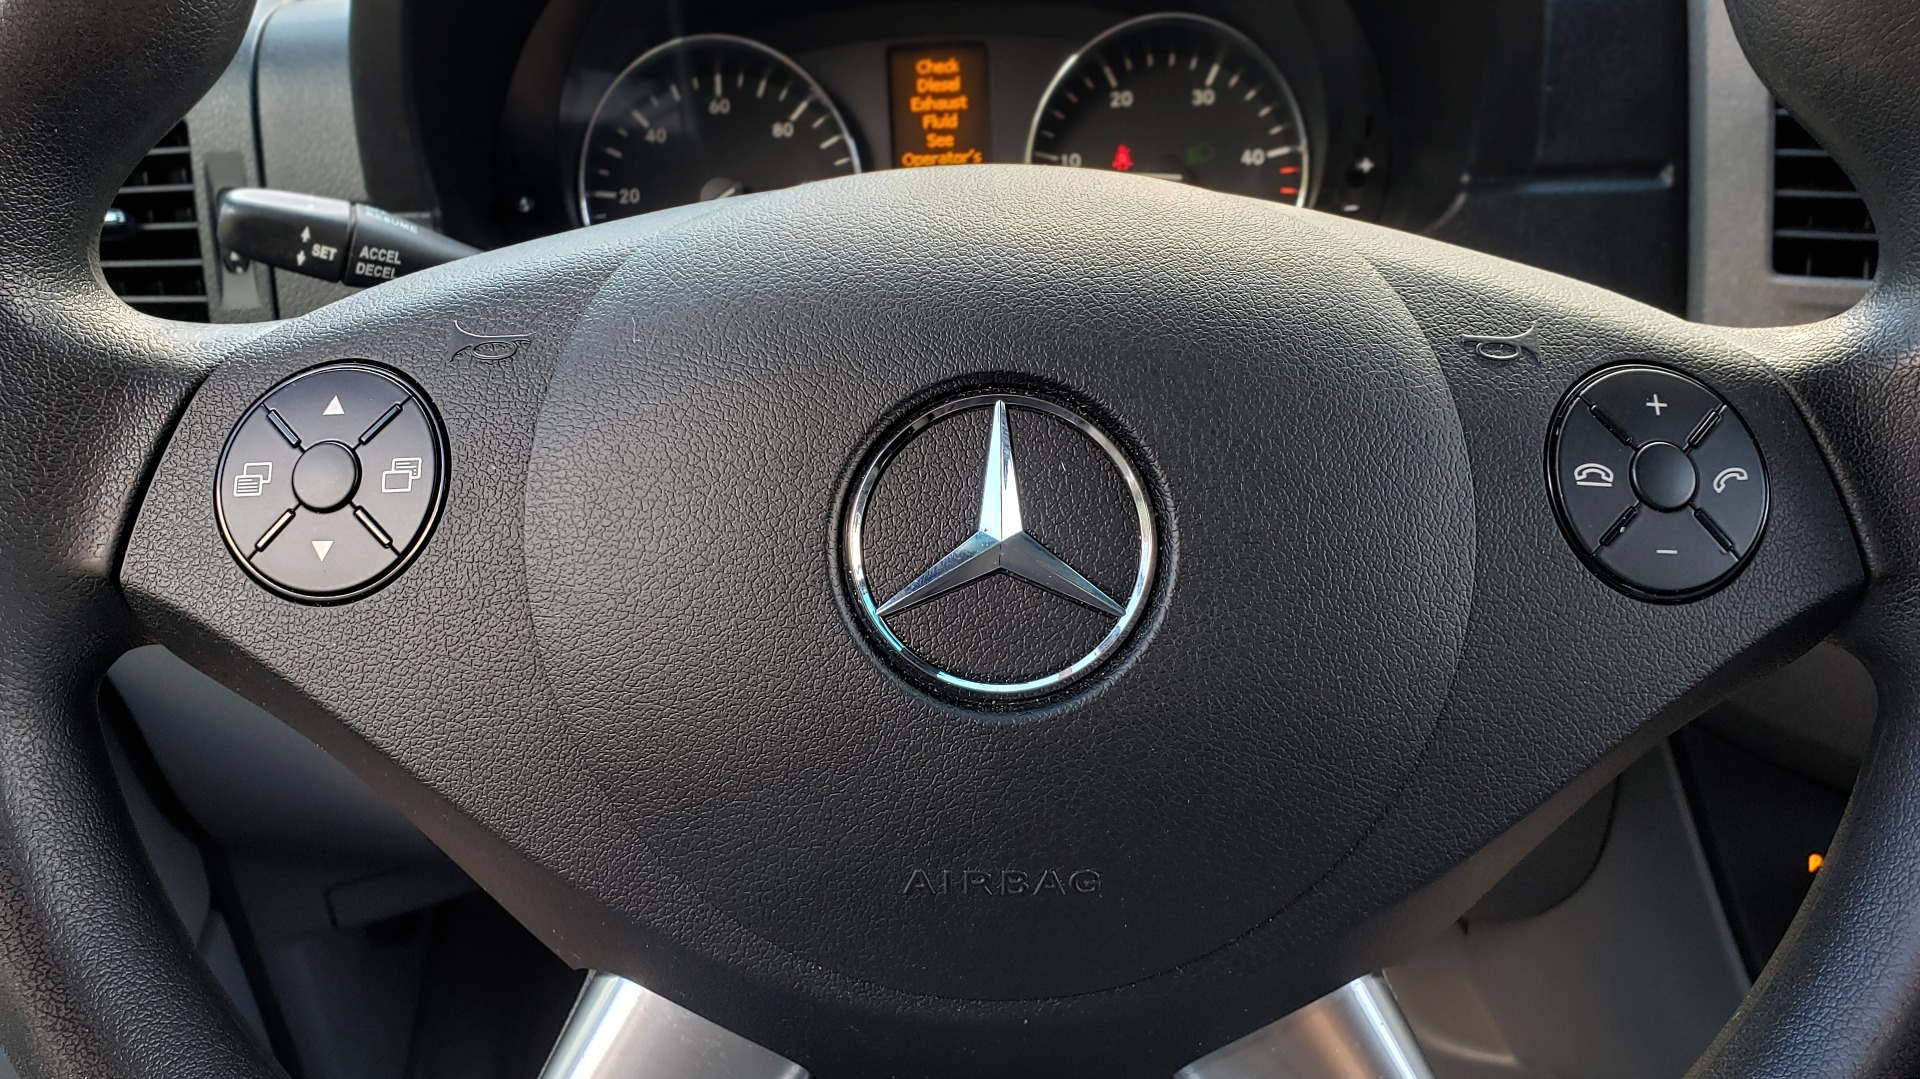 Used 2015 Mercedes-Benz SPRINTER CARGO VAN 4x4 3500 170 EXT / 3.0L V6 TURBO DIESEL / 5-SPD AUTO / REARVIEW for sale $51,999 at Formula Imports in Charlotte NC 28227 33